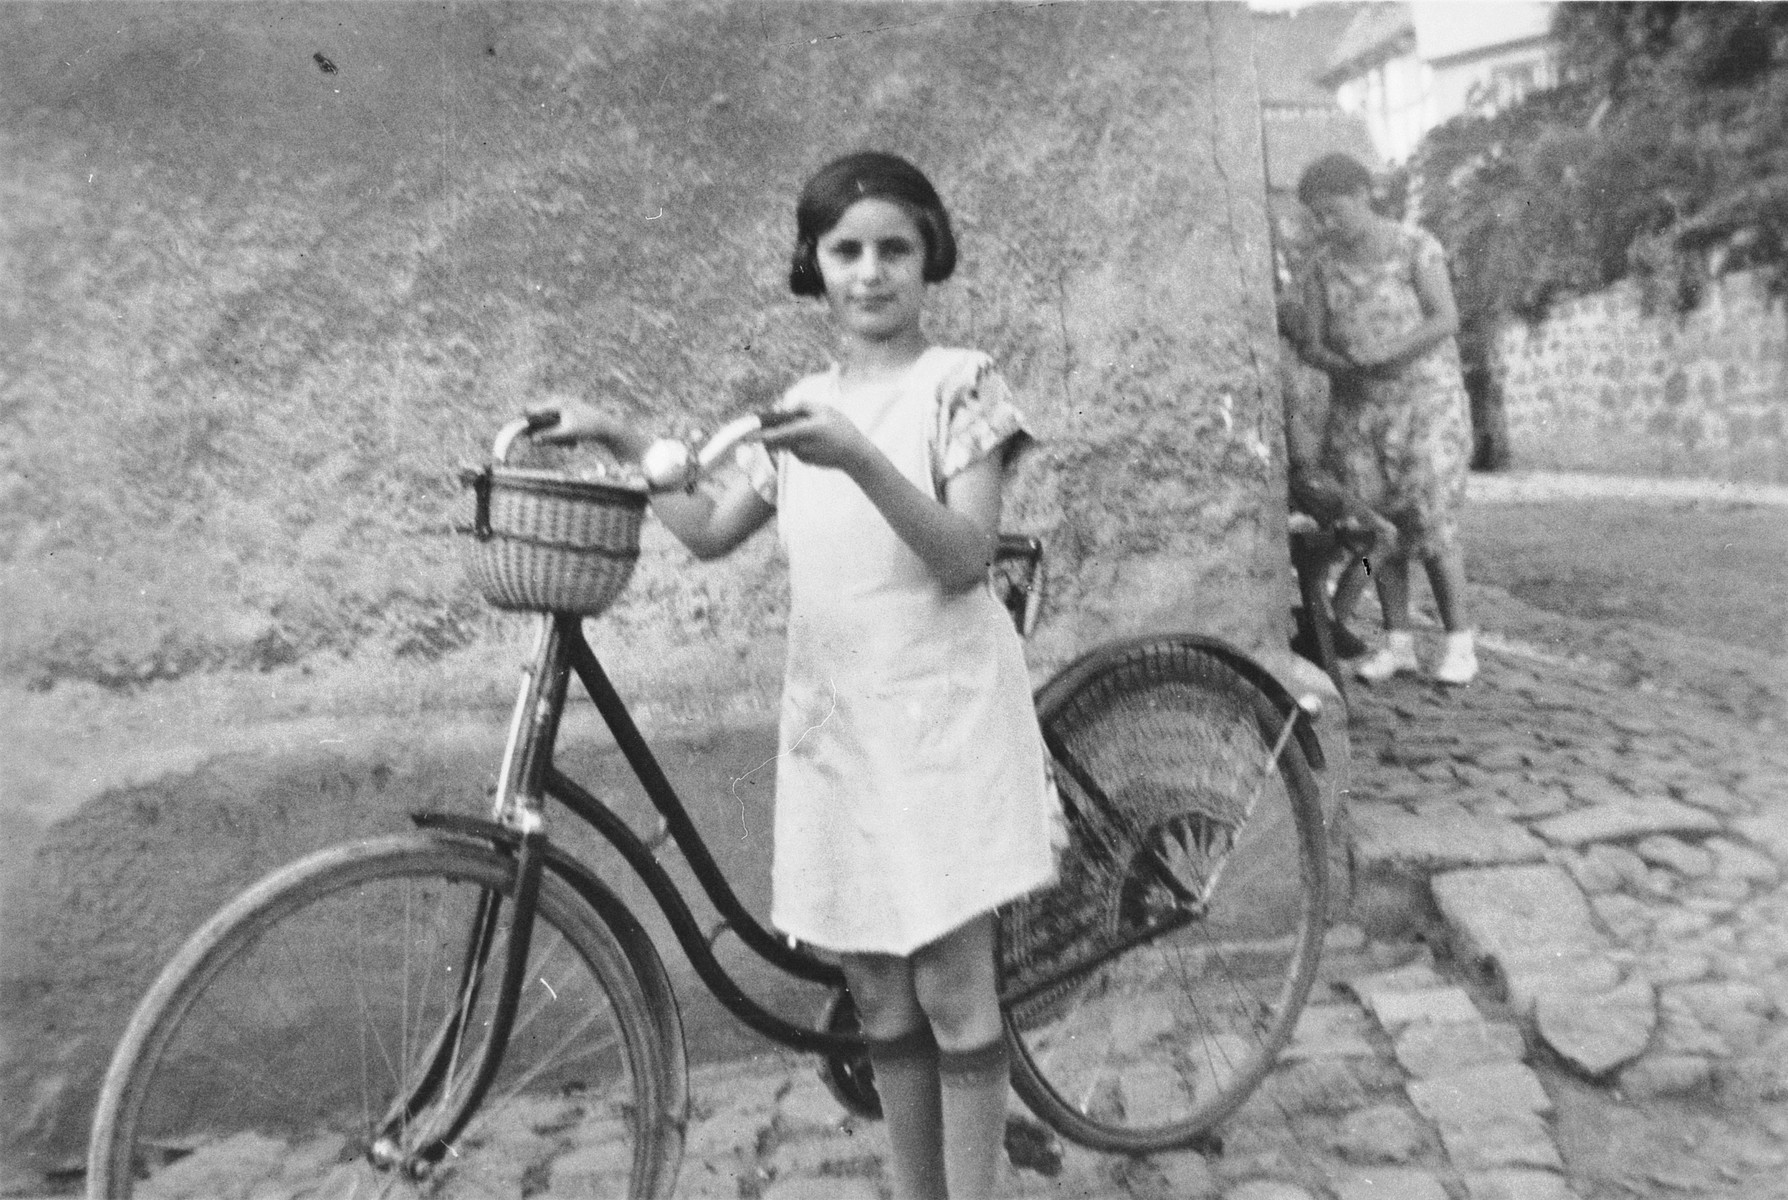 Ruth Herz stands by her bicycle on a street in Holzheim.